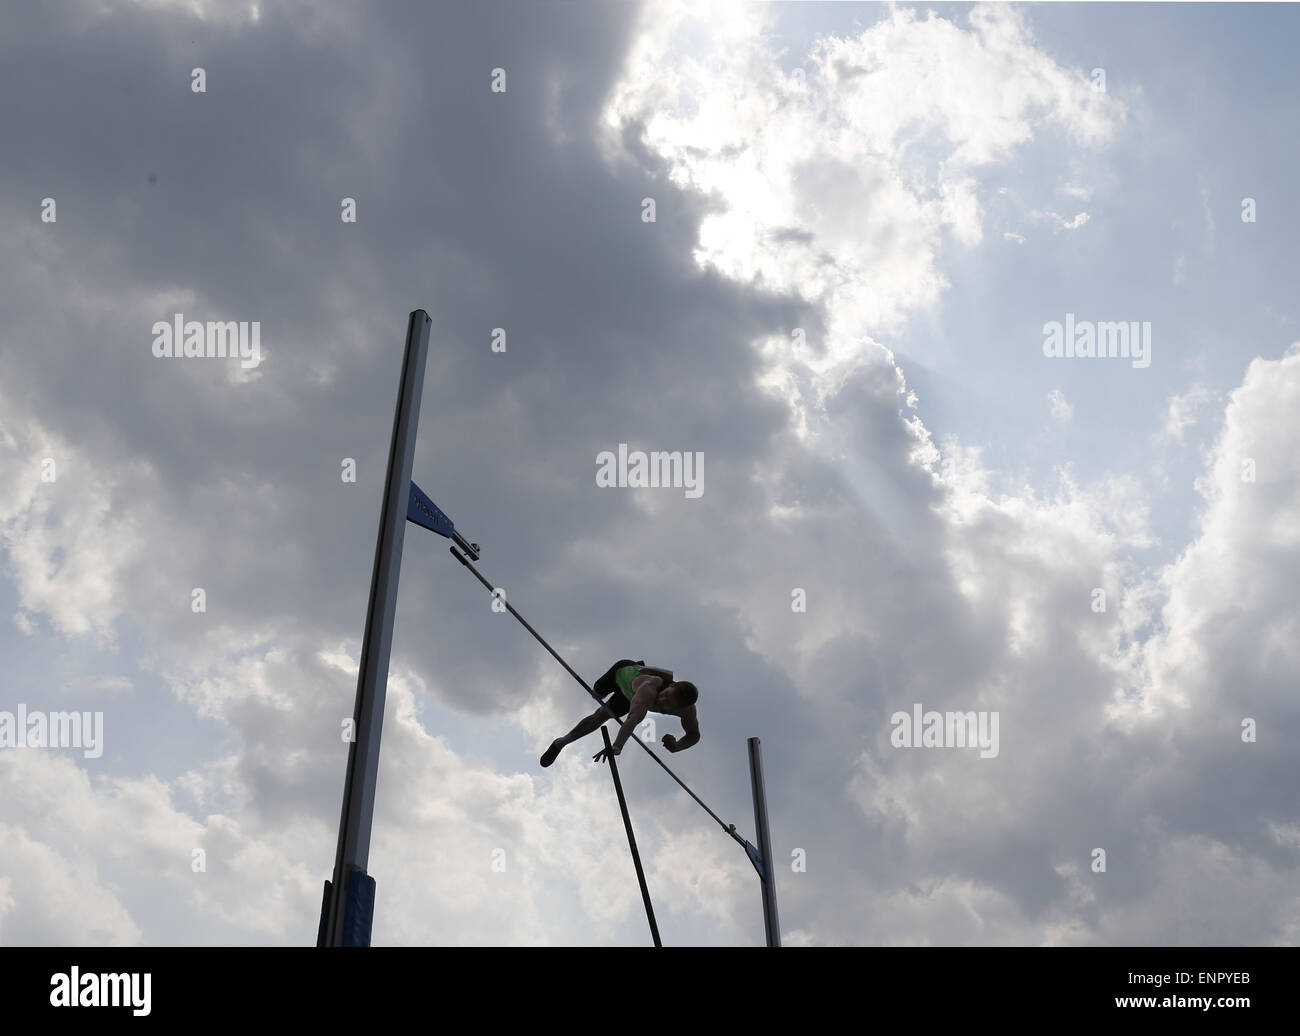 Tokyo, Japan. 10th May, 2015. Max Eaves of England competes during the men's pole vault at Seiko Golden Grand - Stock Image